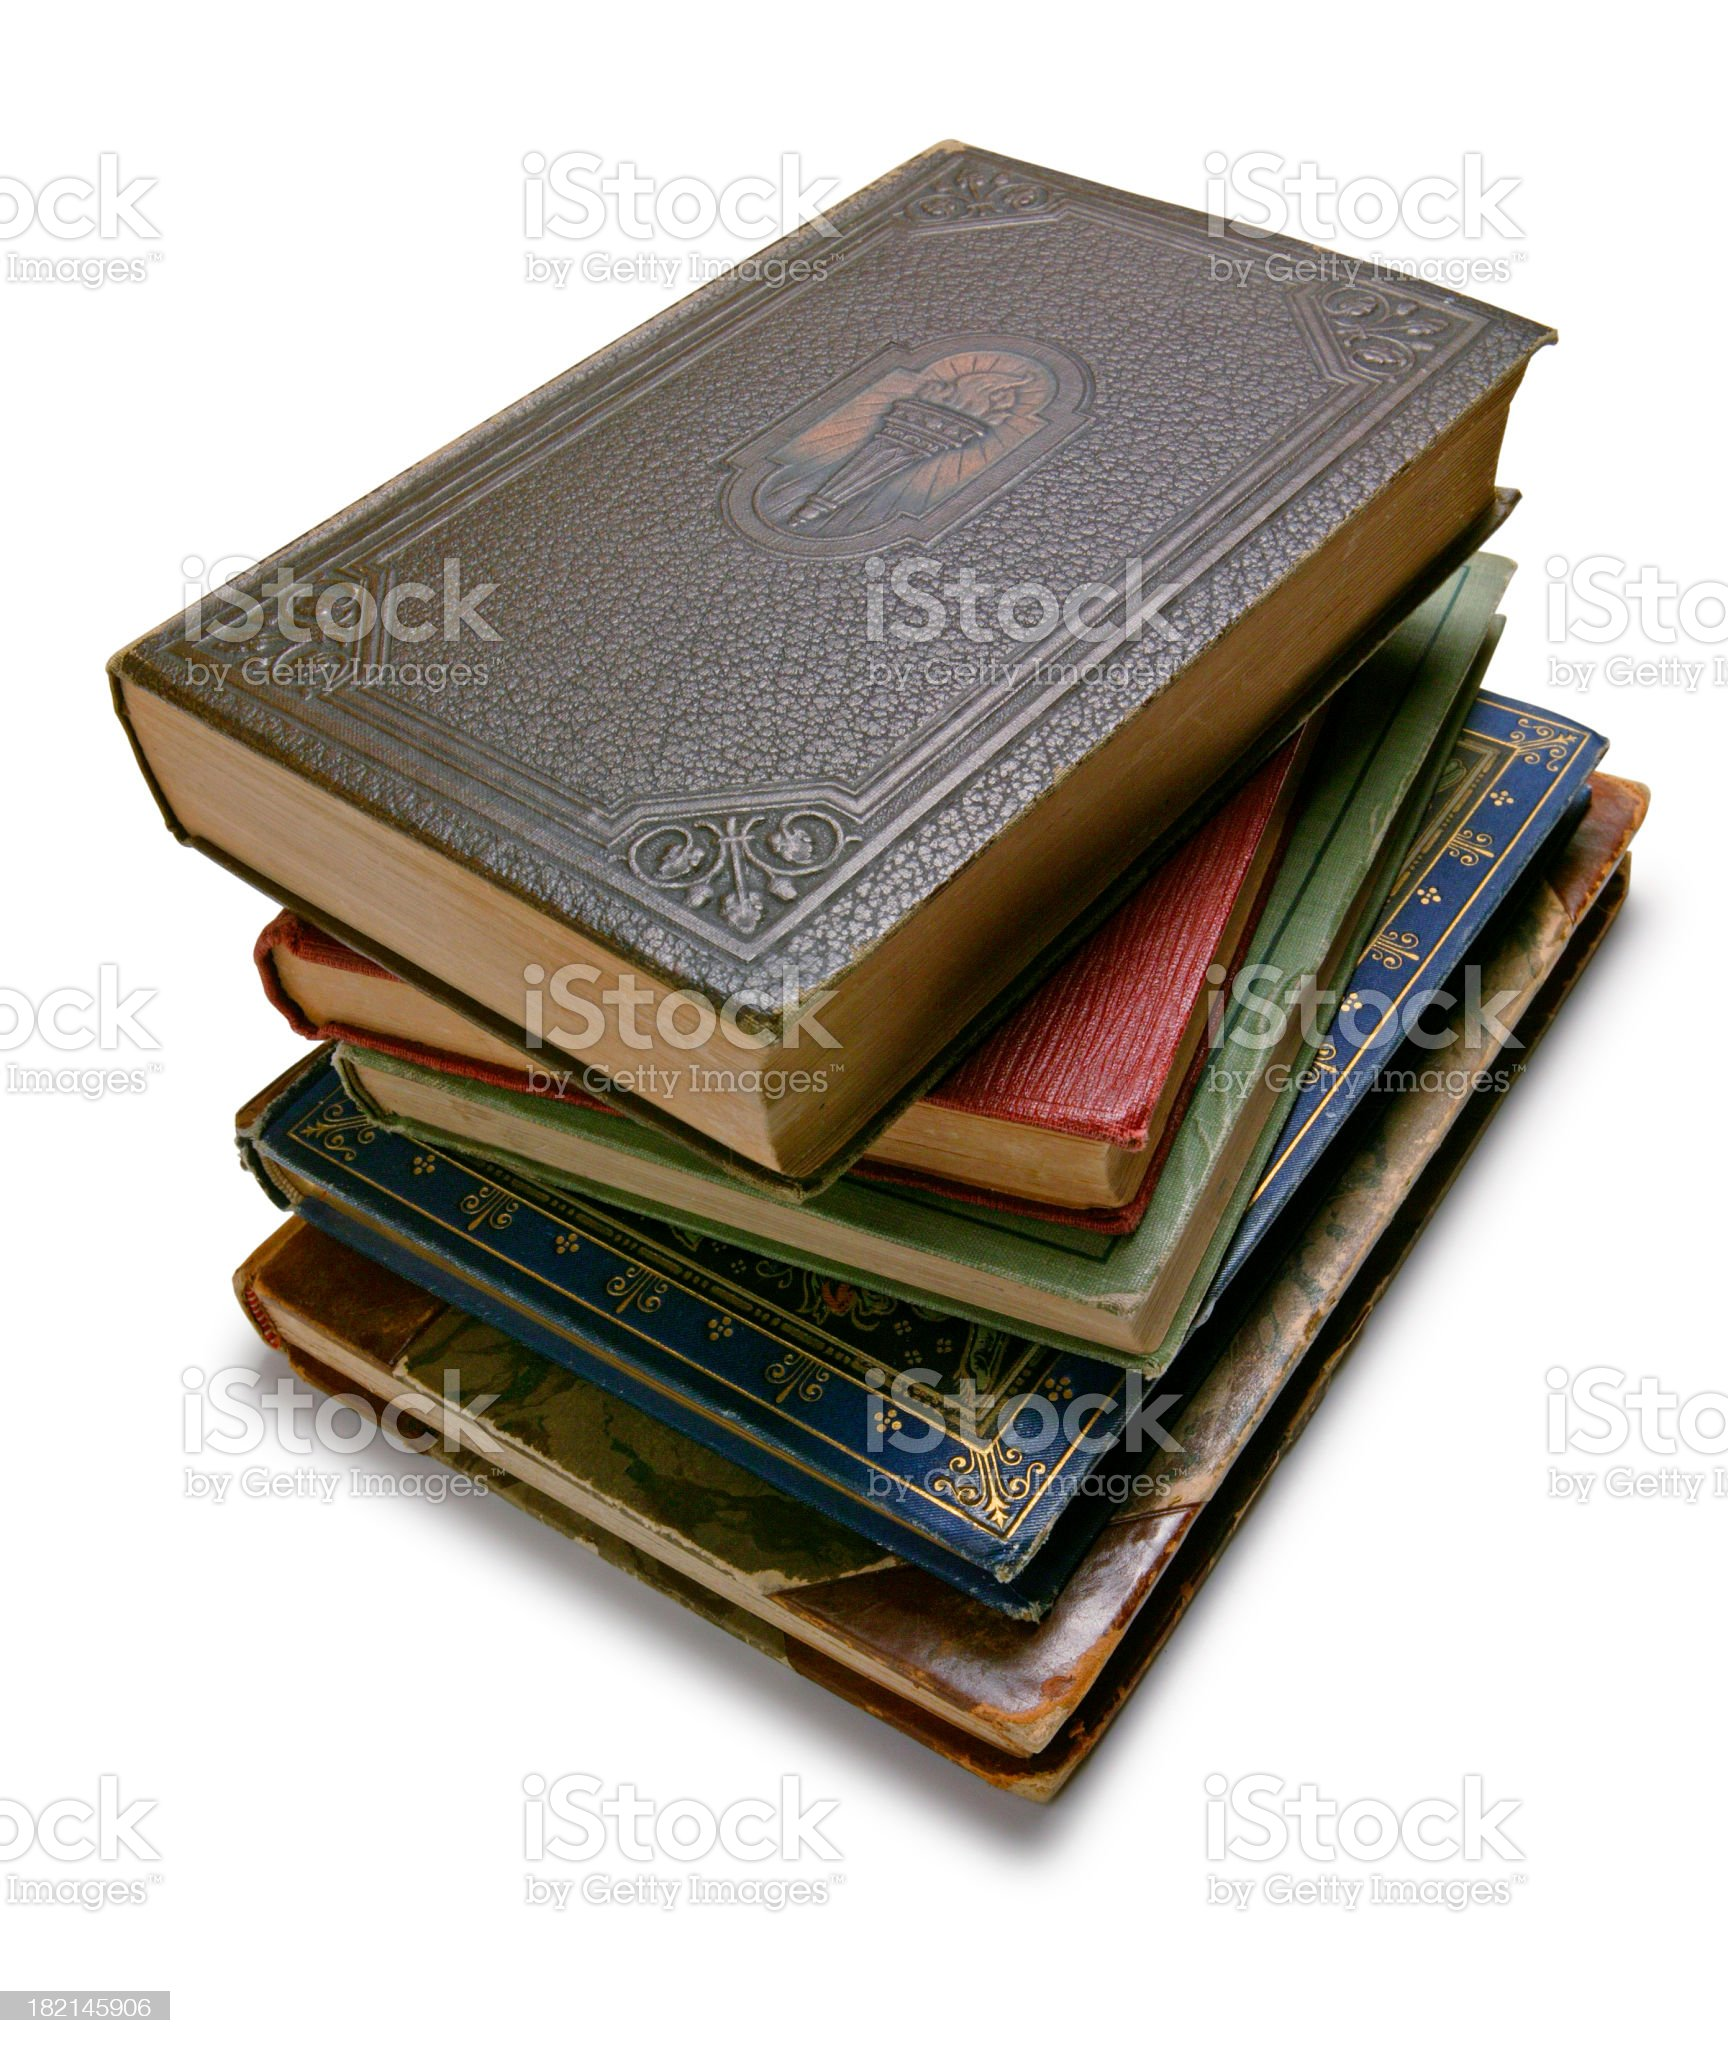 Stack of Antique Books royalty-free stock photo